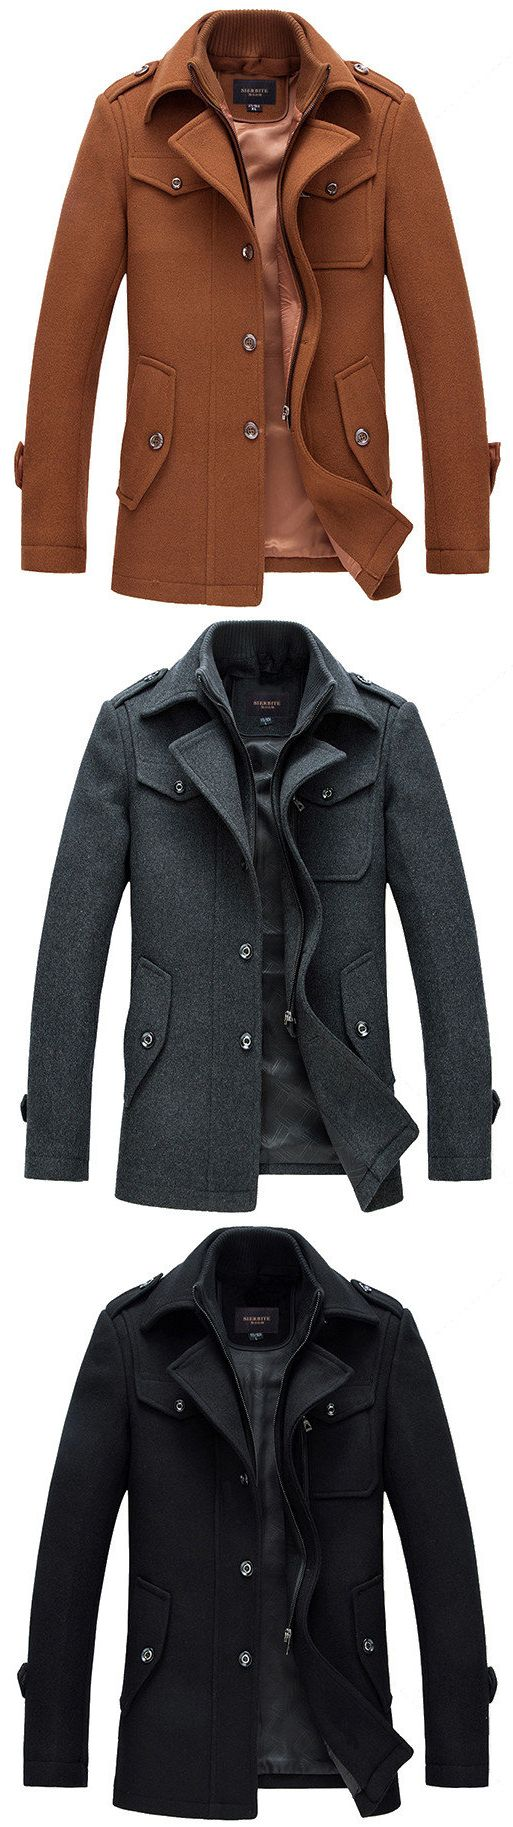 US$65.58 Mens Winter Gentlemanlike Coat Single-breasted Warm Turndown Collar Outwear#jacketscoats #fashion winter#